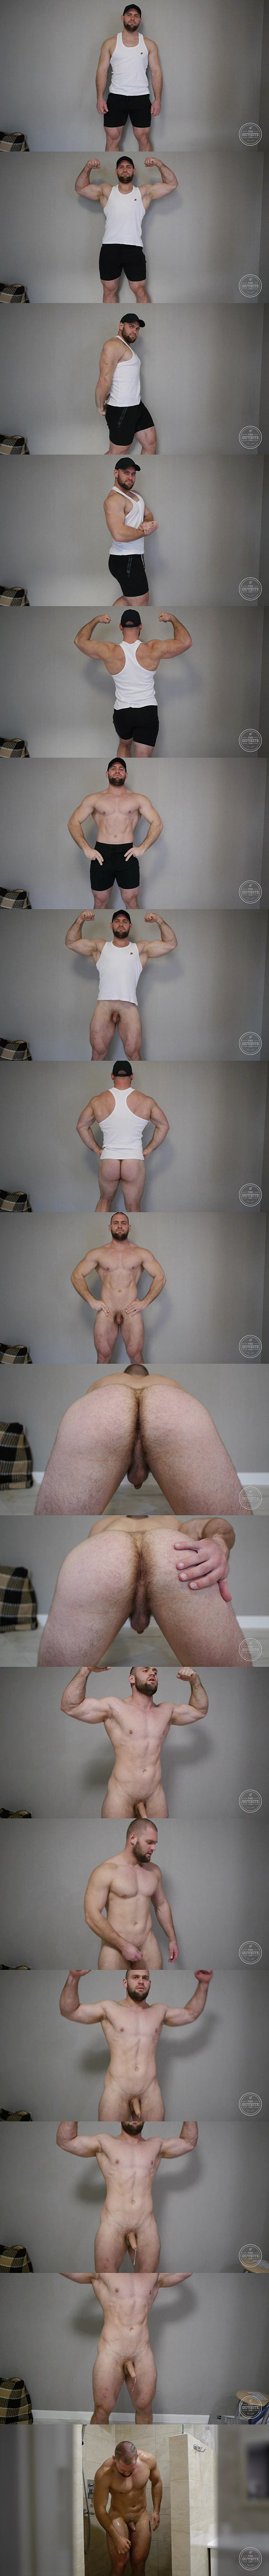 Tall masculine newcomer, Russian beefcake Nicolai poses his naked muscular body before he has a hands free orgasm in Big Naked Man From Russia at Theguysite